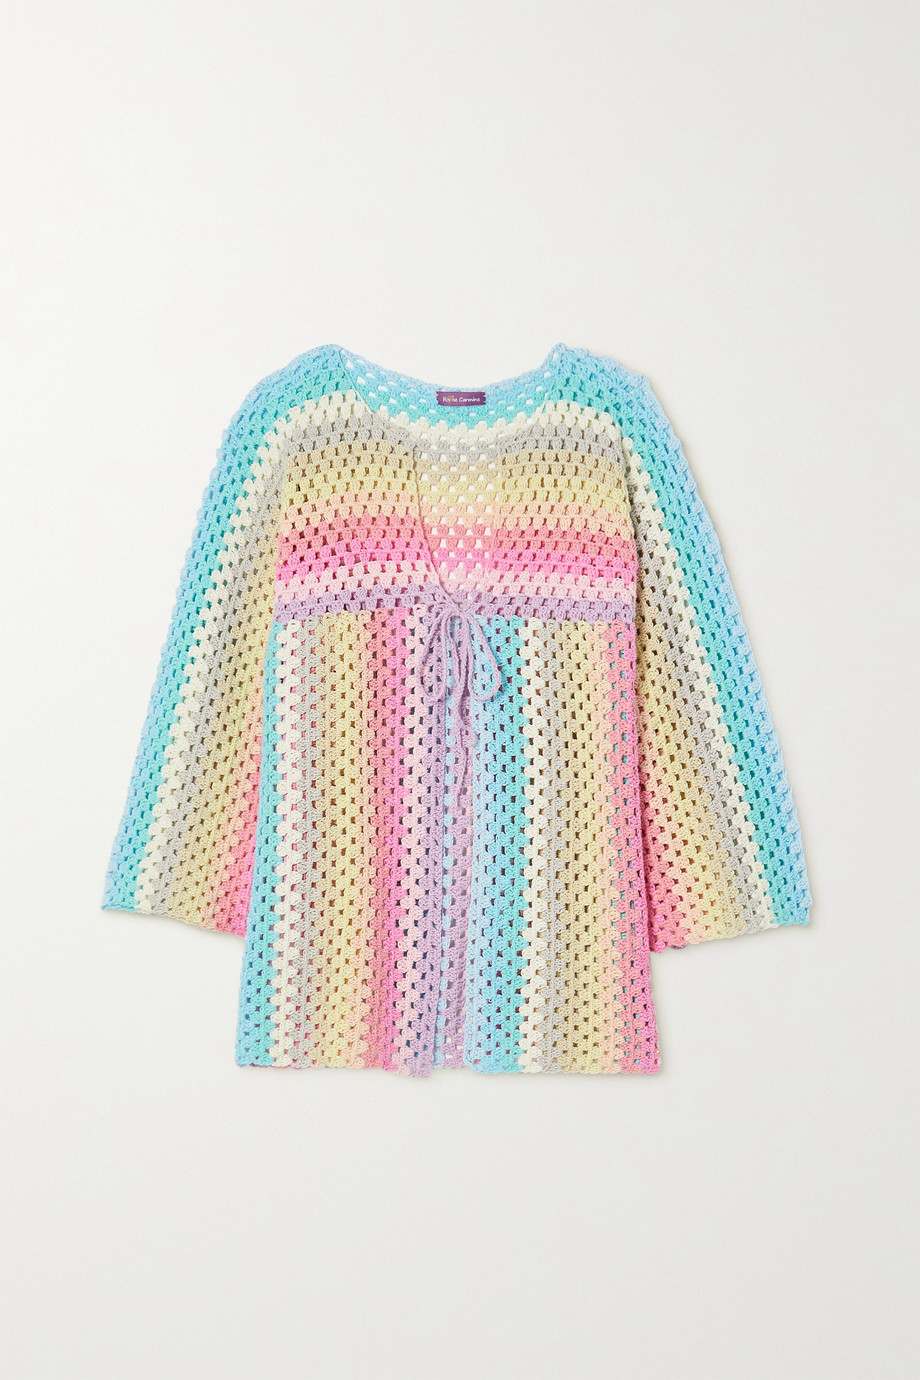 Rose Carmine Striped crocheted cotton sweater